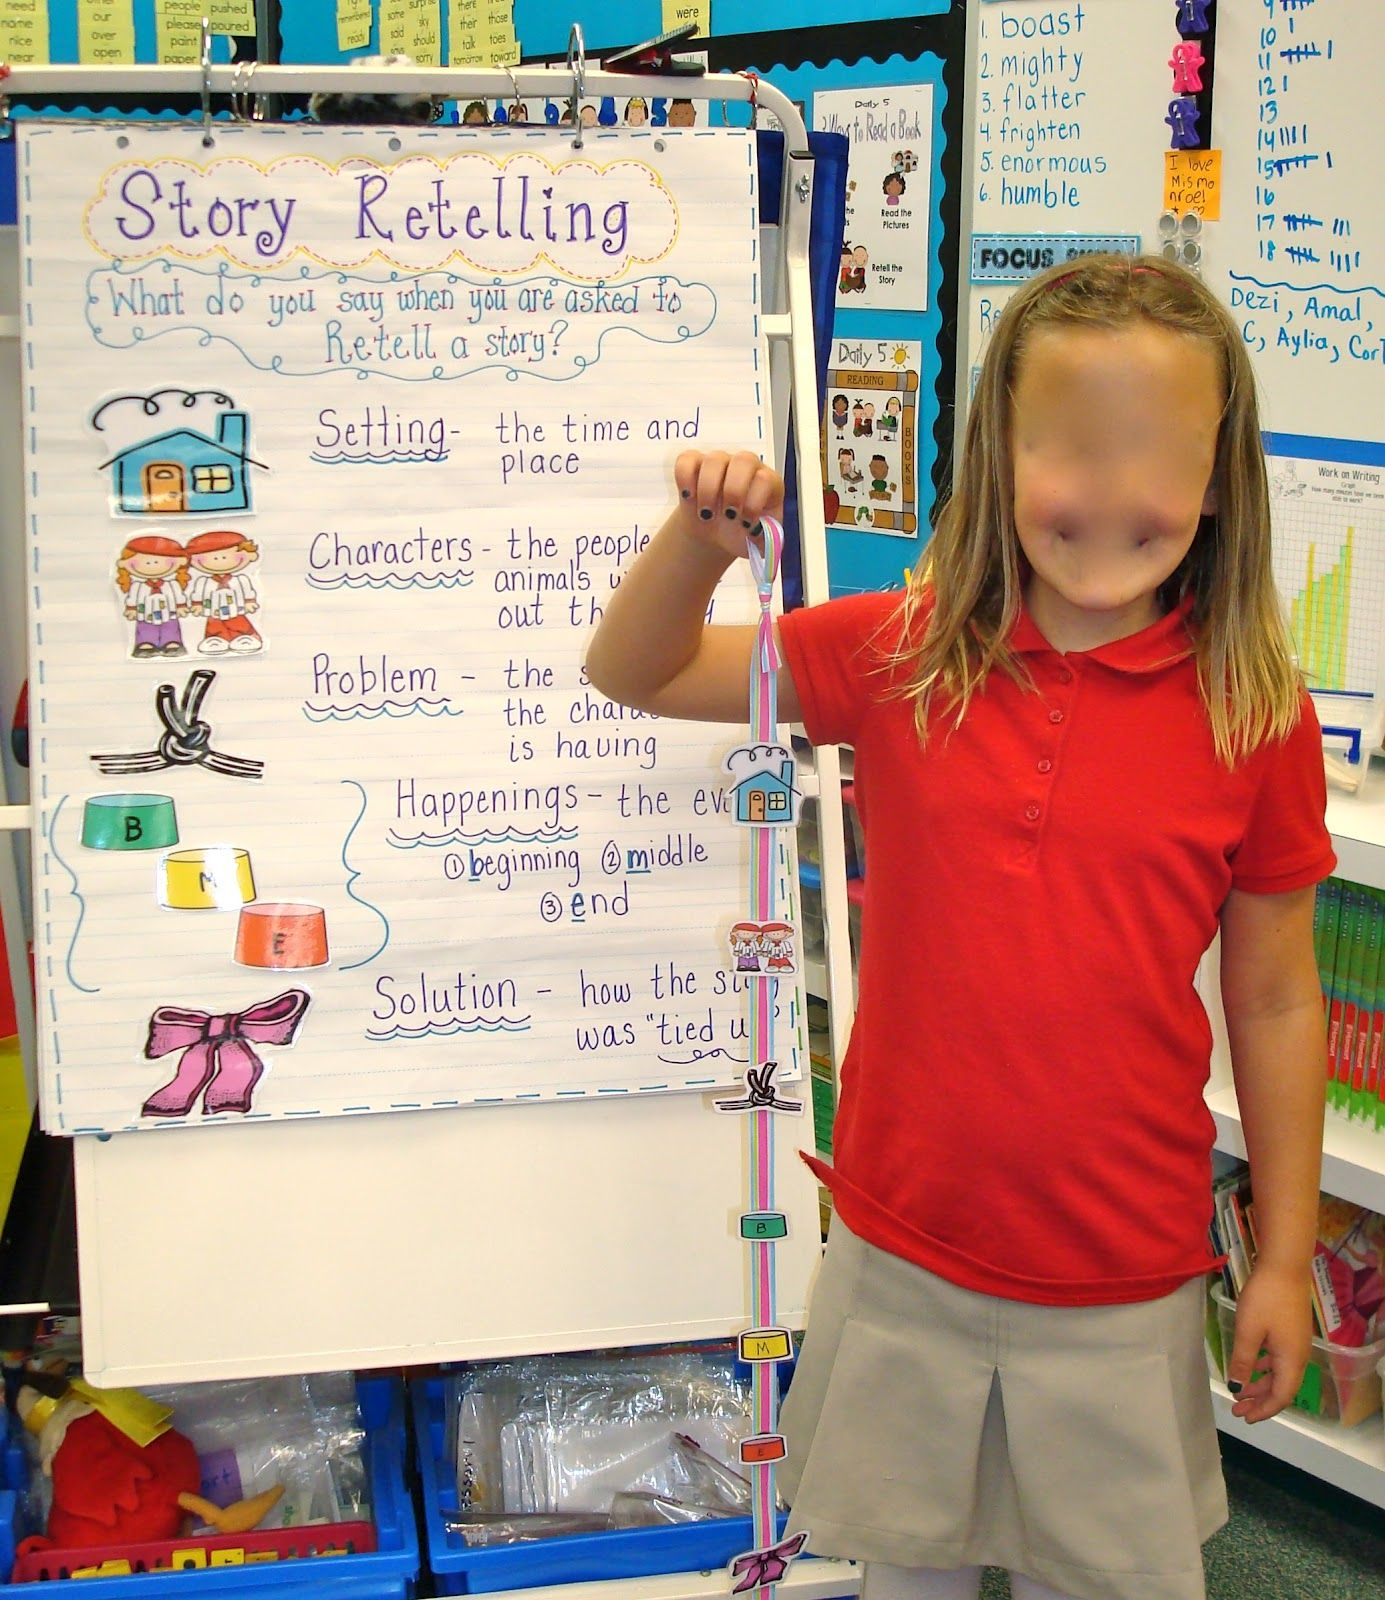 Retell ribbon-what an awesome visual for story retelling.